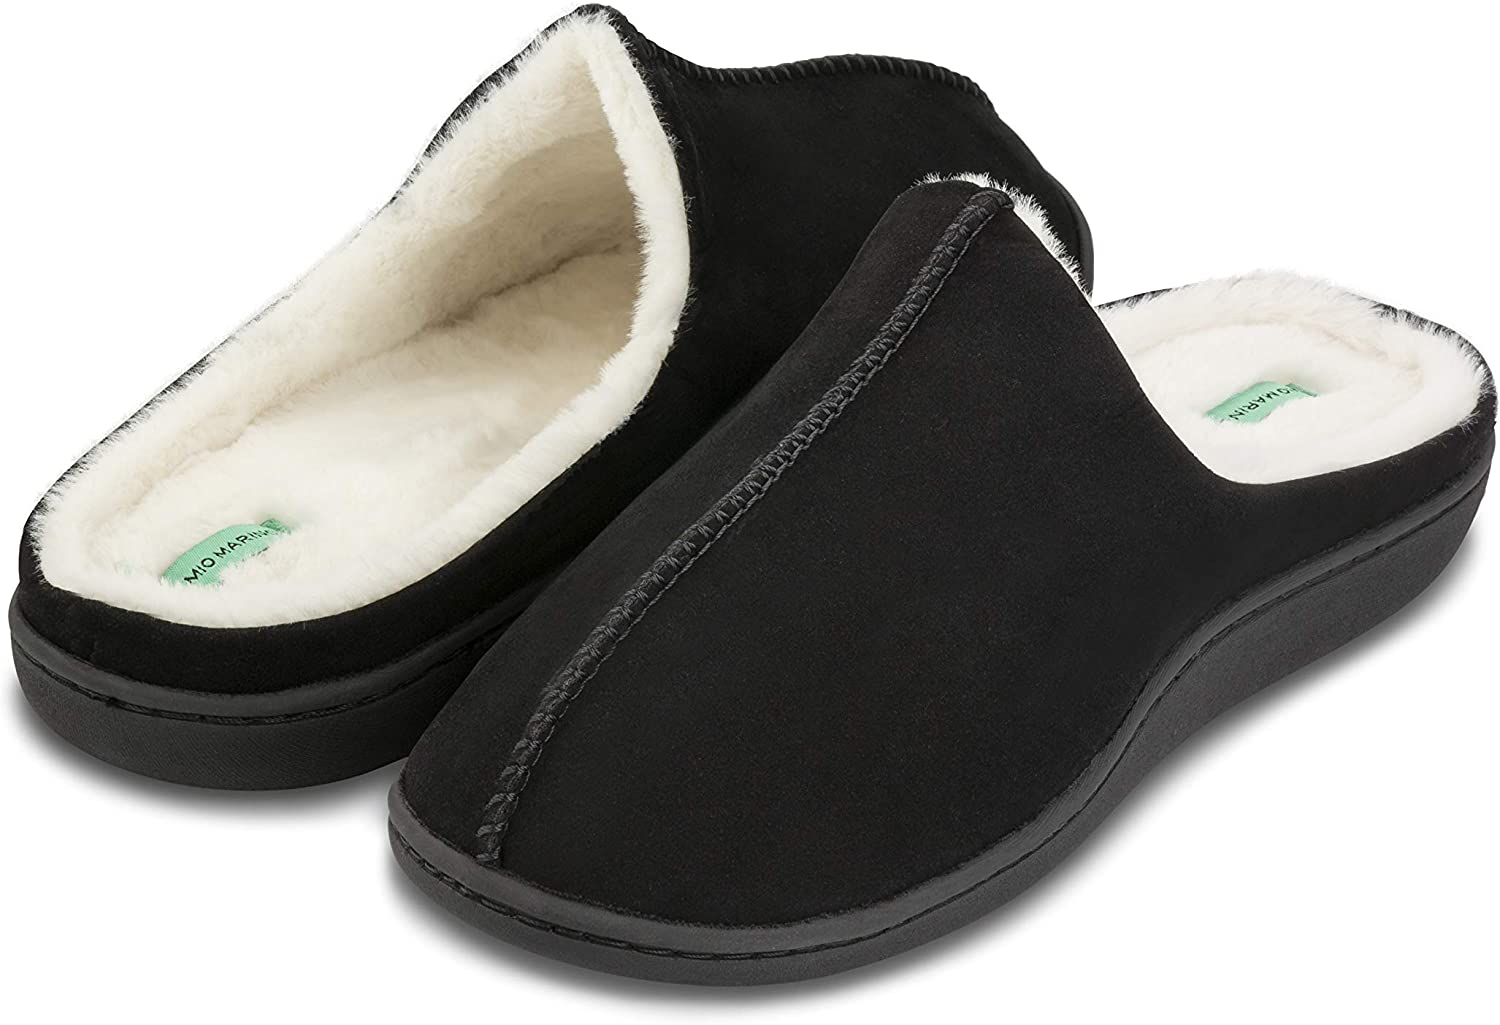 House Slippers for Men Memory Foam Mio Marino Mens Slippers